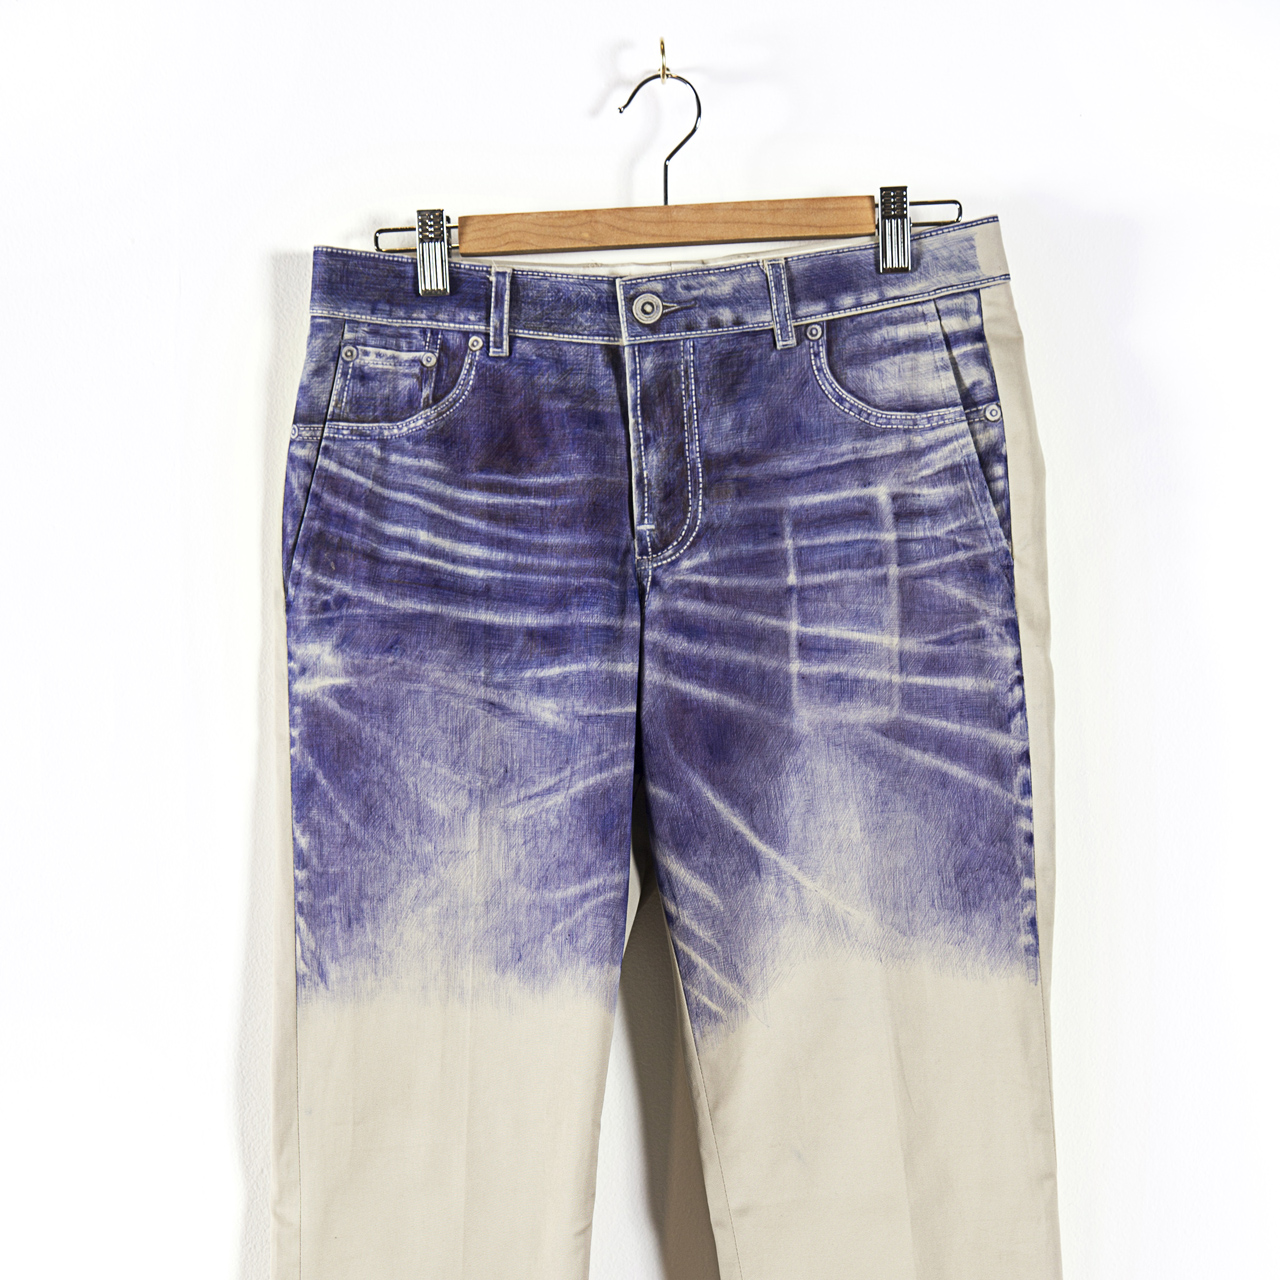 Ben Garthus, Ballpoint pen drawing of favorite pair of jeans on least favorite pair of khakis. sq